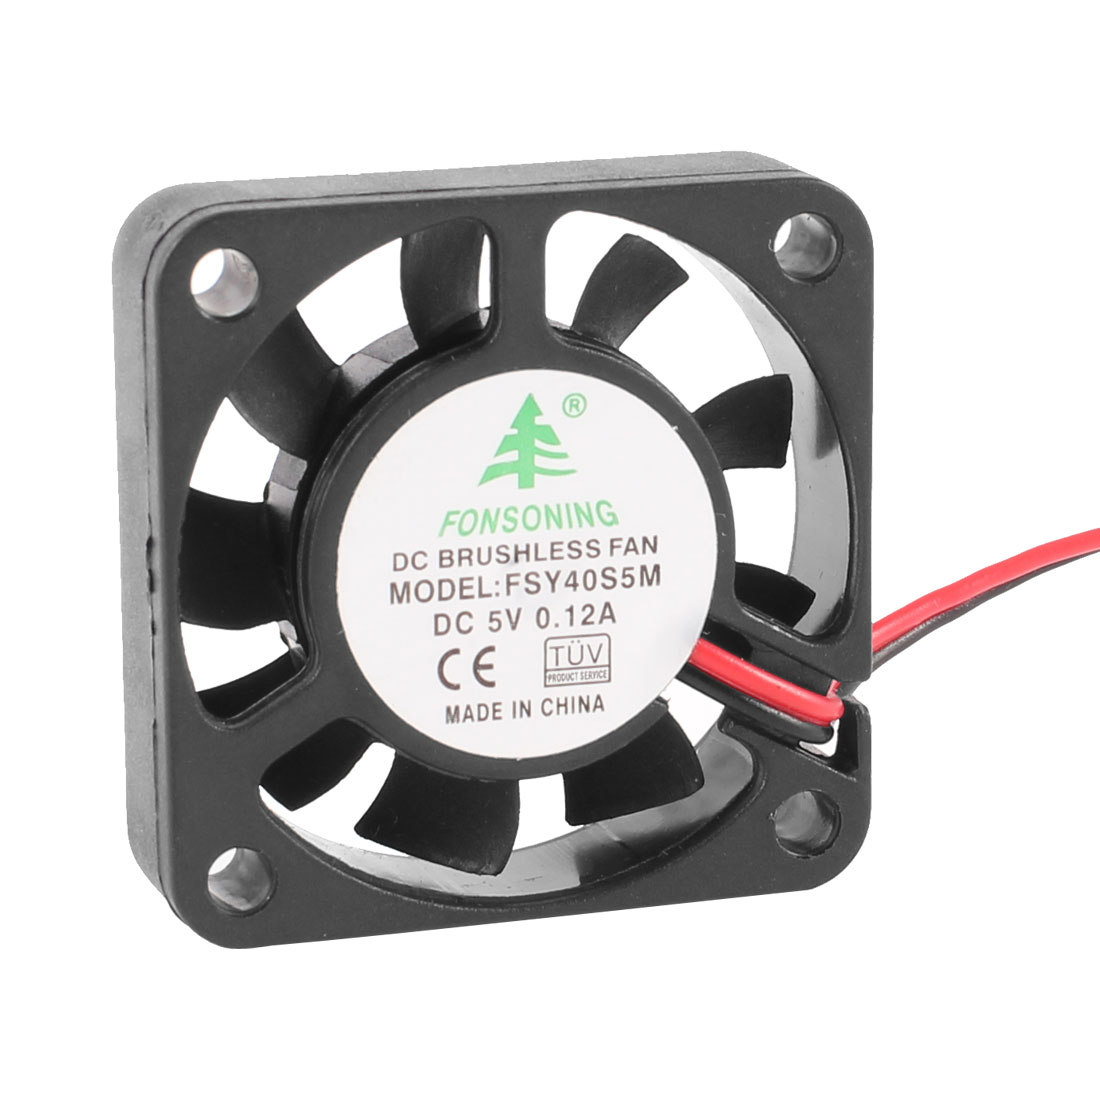 40mm x 10mm 0.12A 2 Terminal 5V DC Brushless Sleeve Bearing Cooling Fan